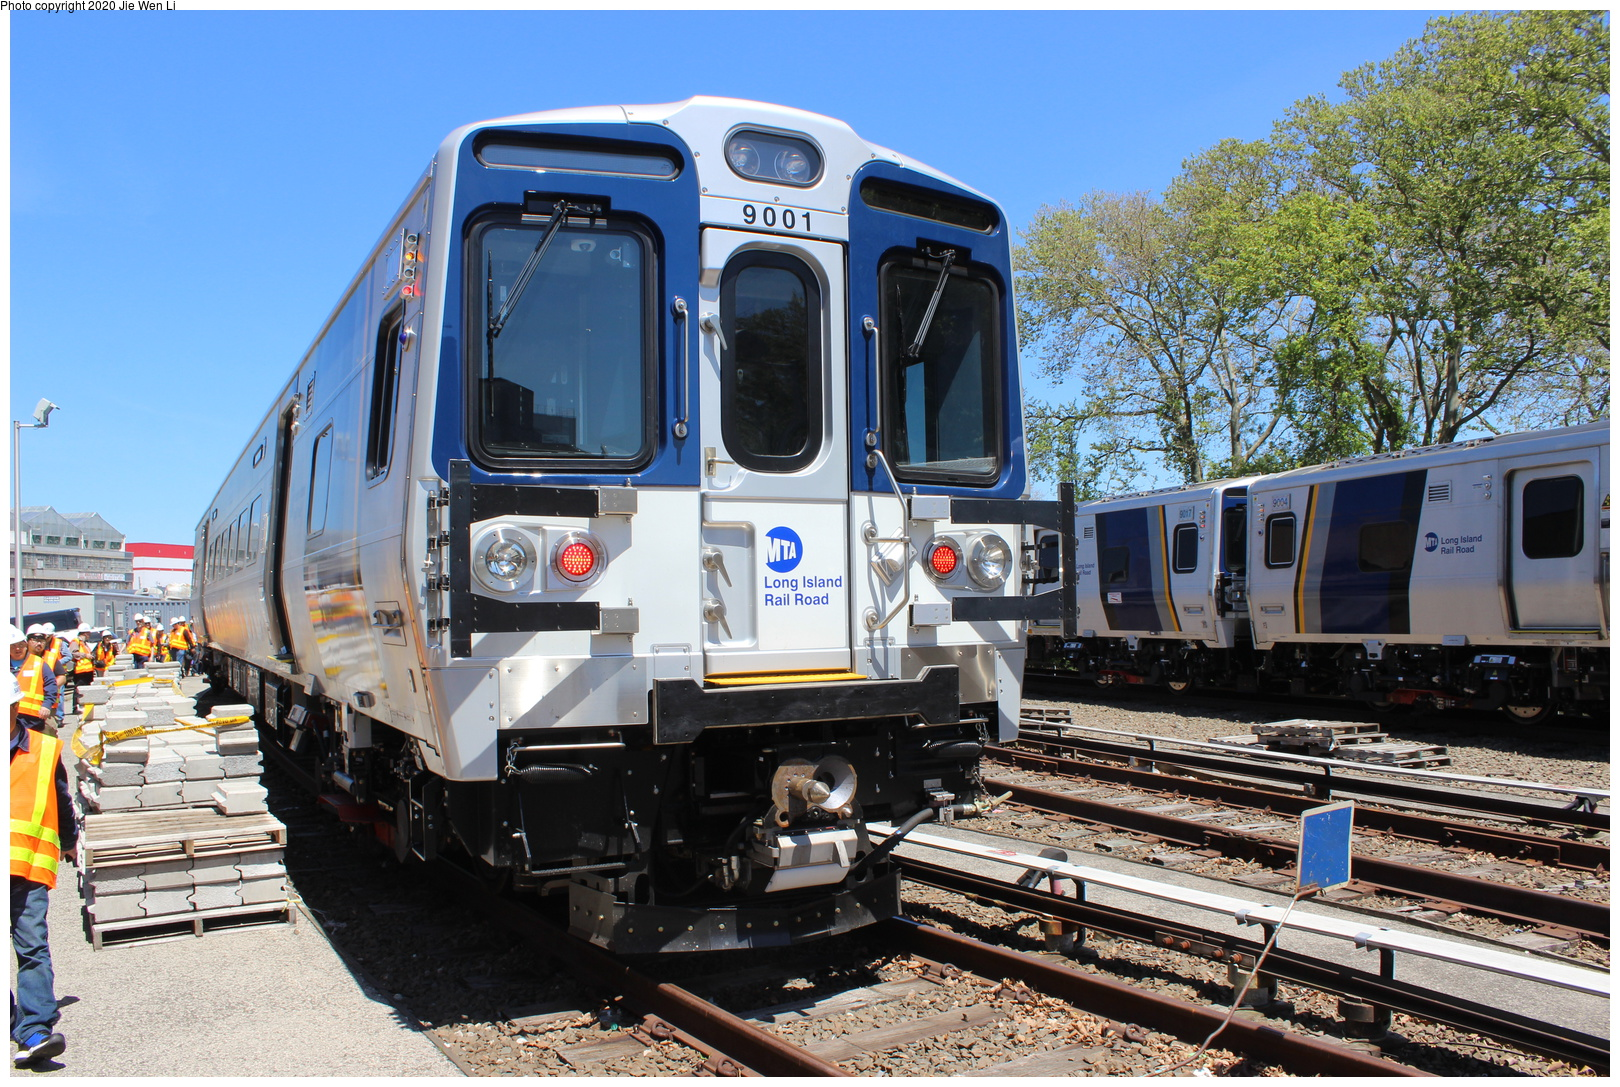 (267k, 1044x988)<br><b>Country:</b> United States<br><b>City:</b> New York<br><b>System:</b> New York City Transit<br><b>Line:</b> 9th Avenue El<br><b>Location:</b> 155th Street <br><b>Car:</b> Low-V 4215 <br><b>Photo by:</b> Joel Shanus<br><b>Viewed (this week/total):</b> 2 / 2132